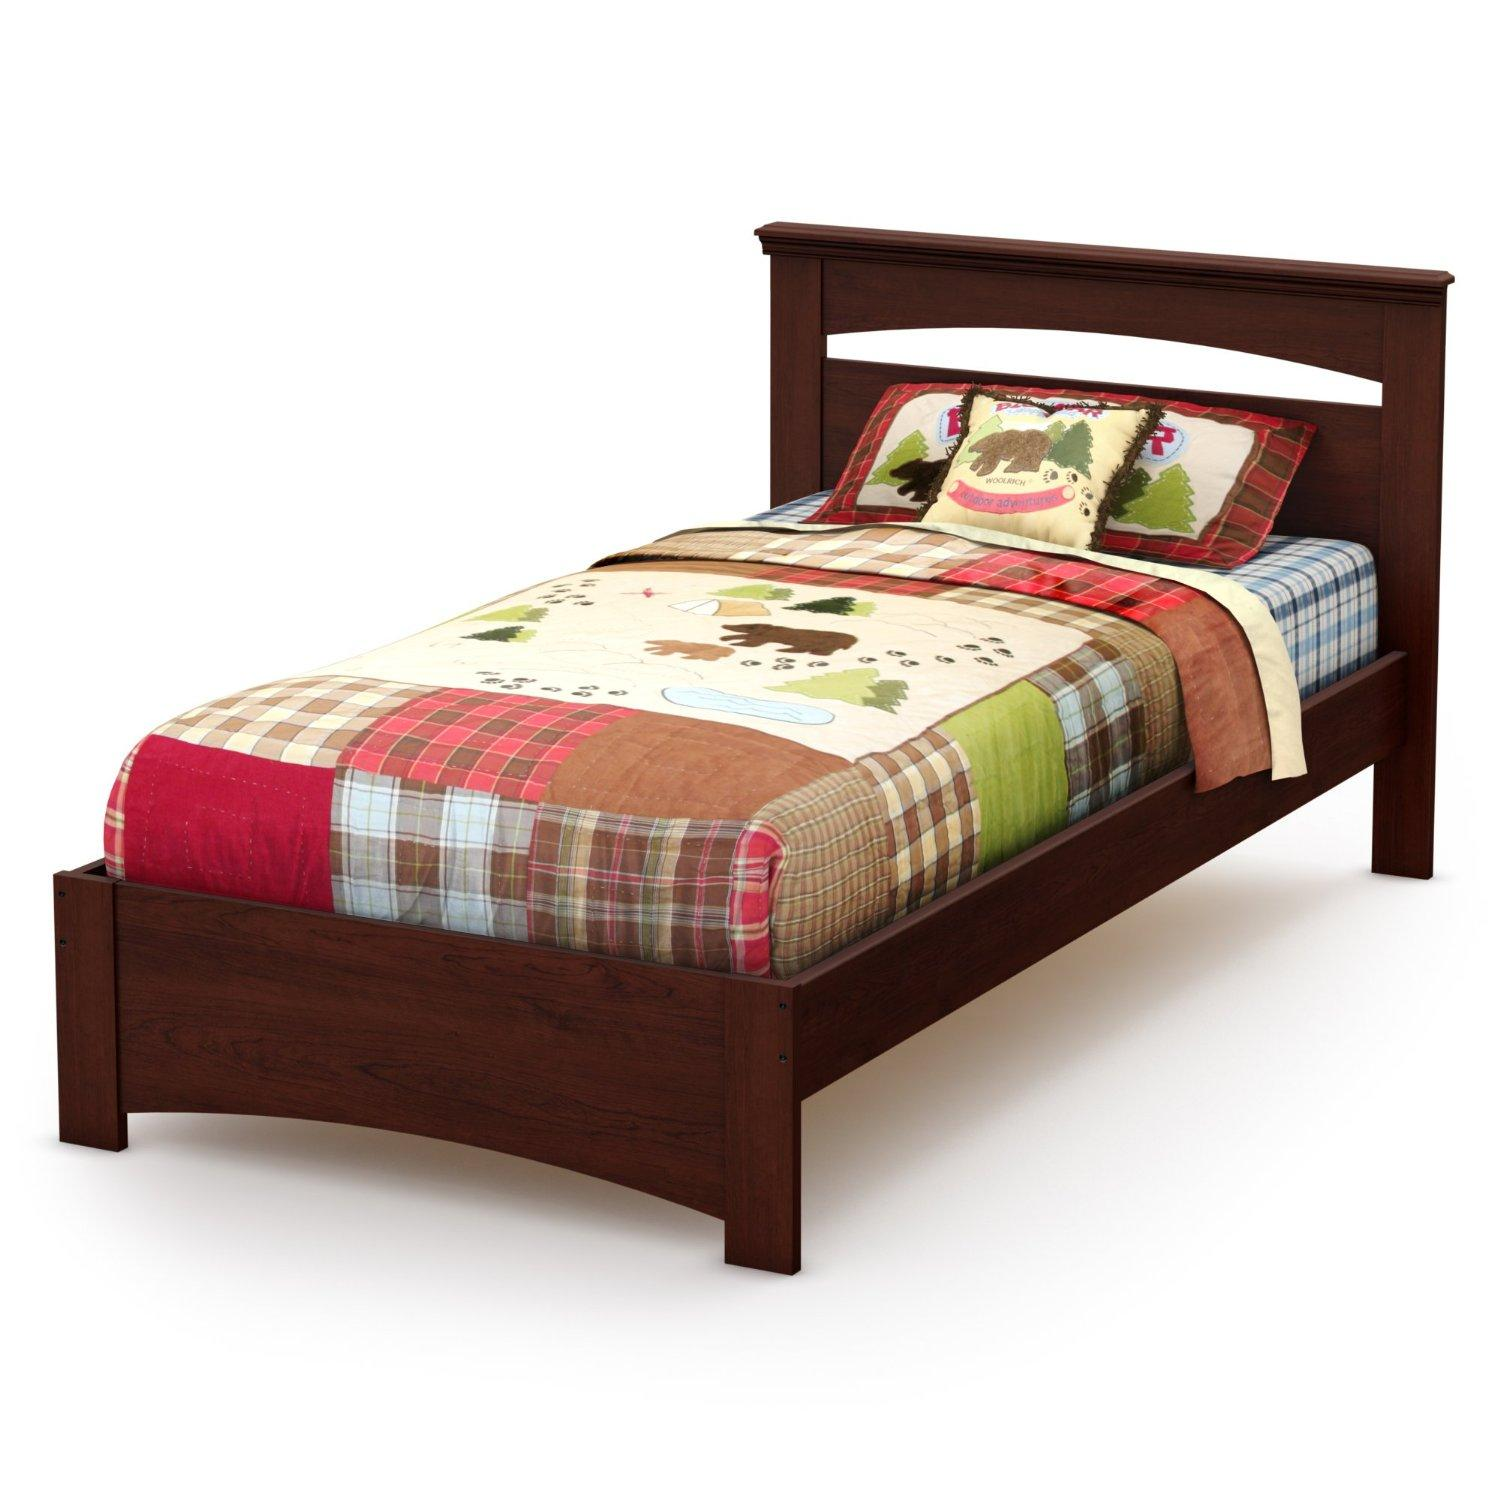 South shore libra twin bed set by oj commerce 3859189 Twin bed frames